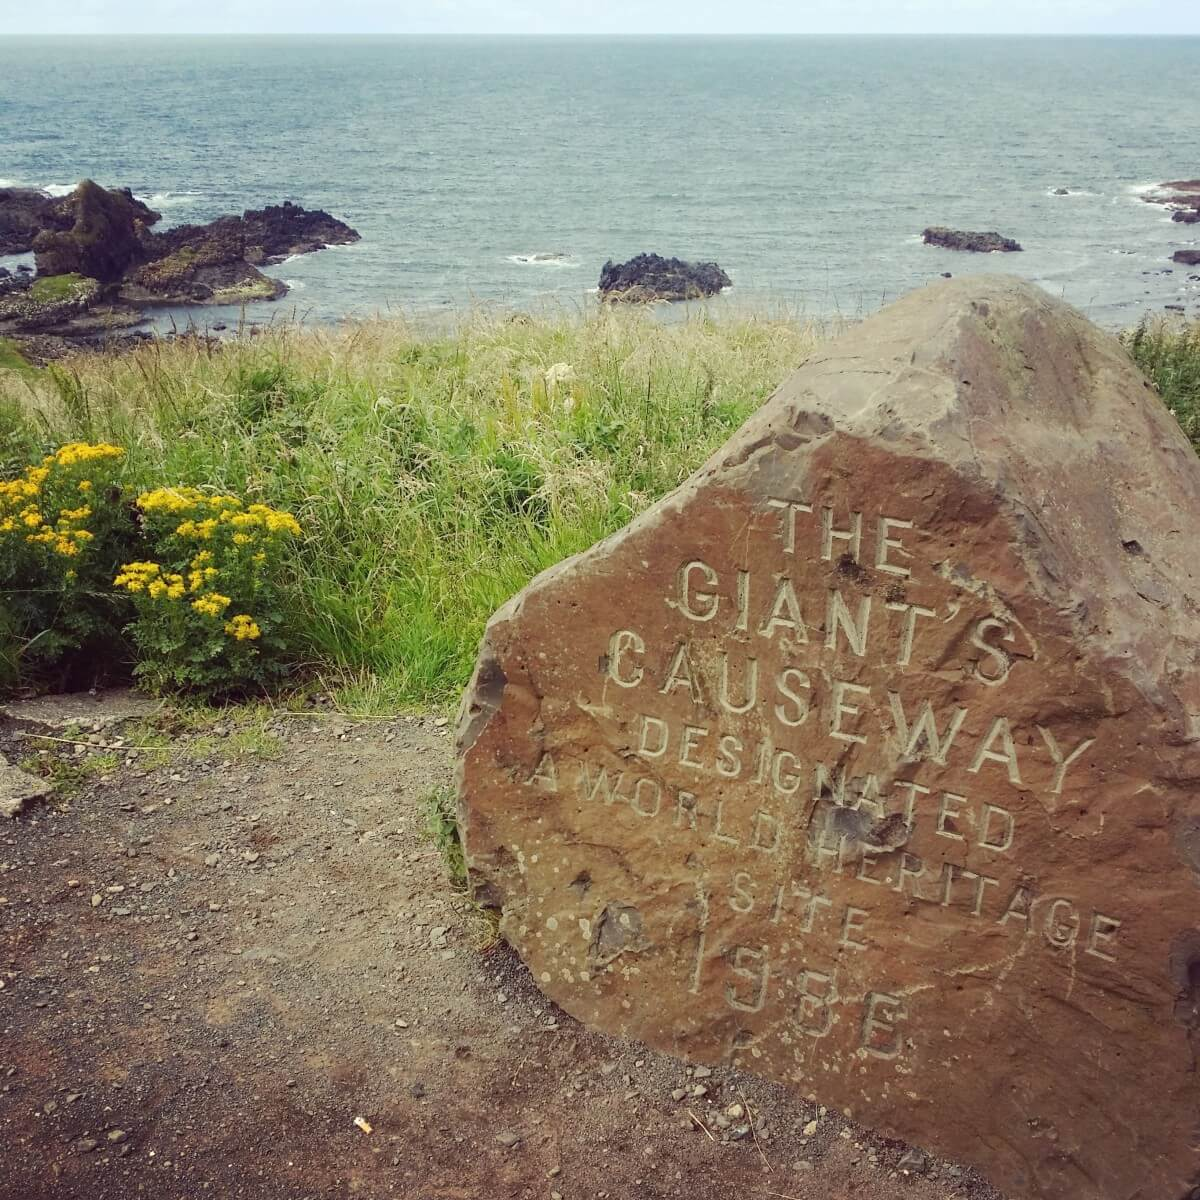 carrick-a-rede rope bridge Giants Causeway Tour facts accommodation where is tara 5 giant's causeway daytrip